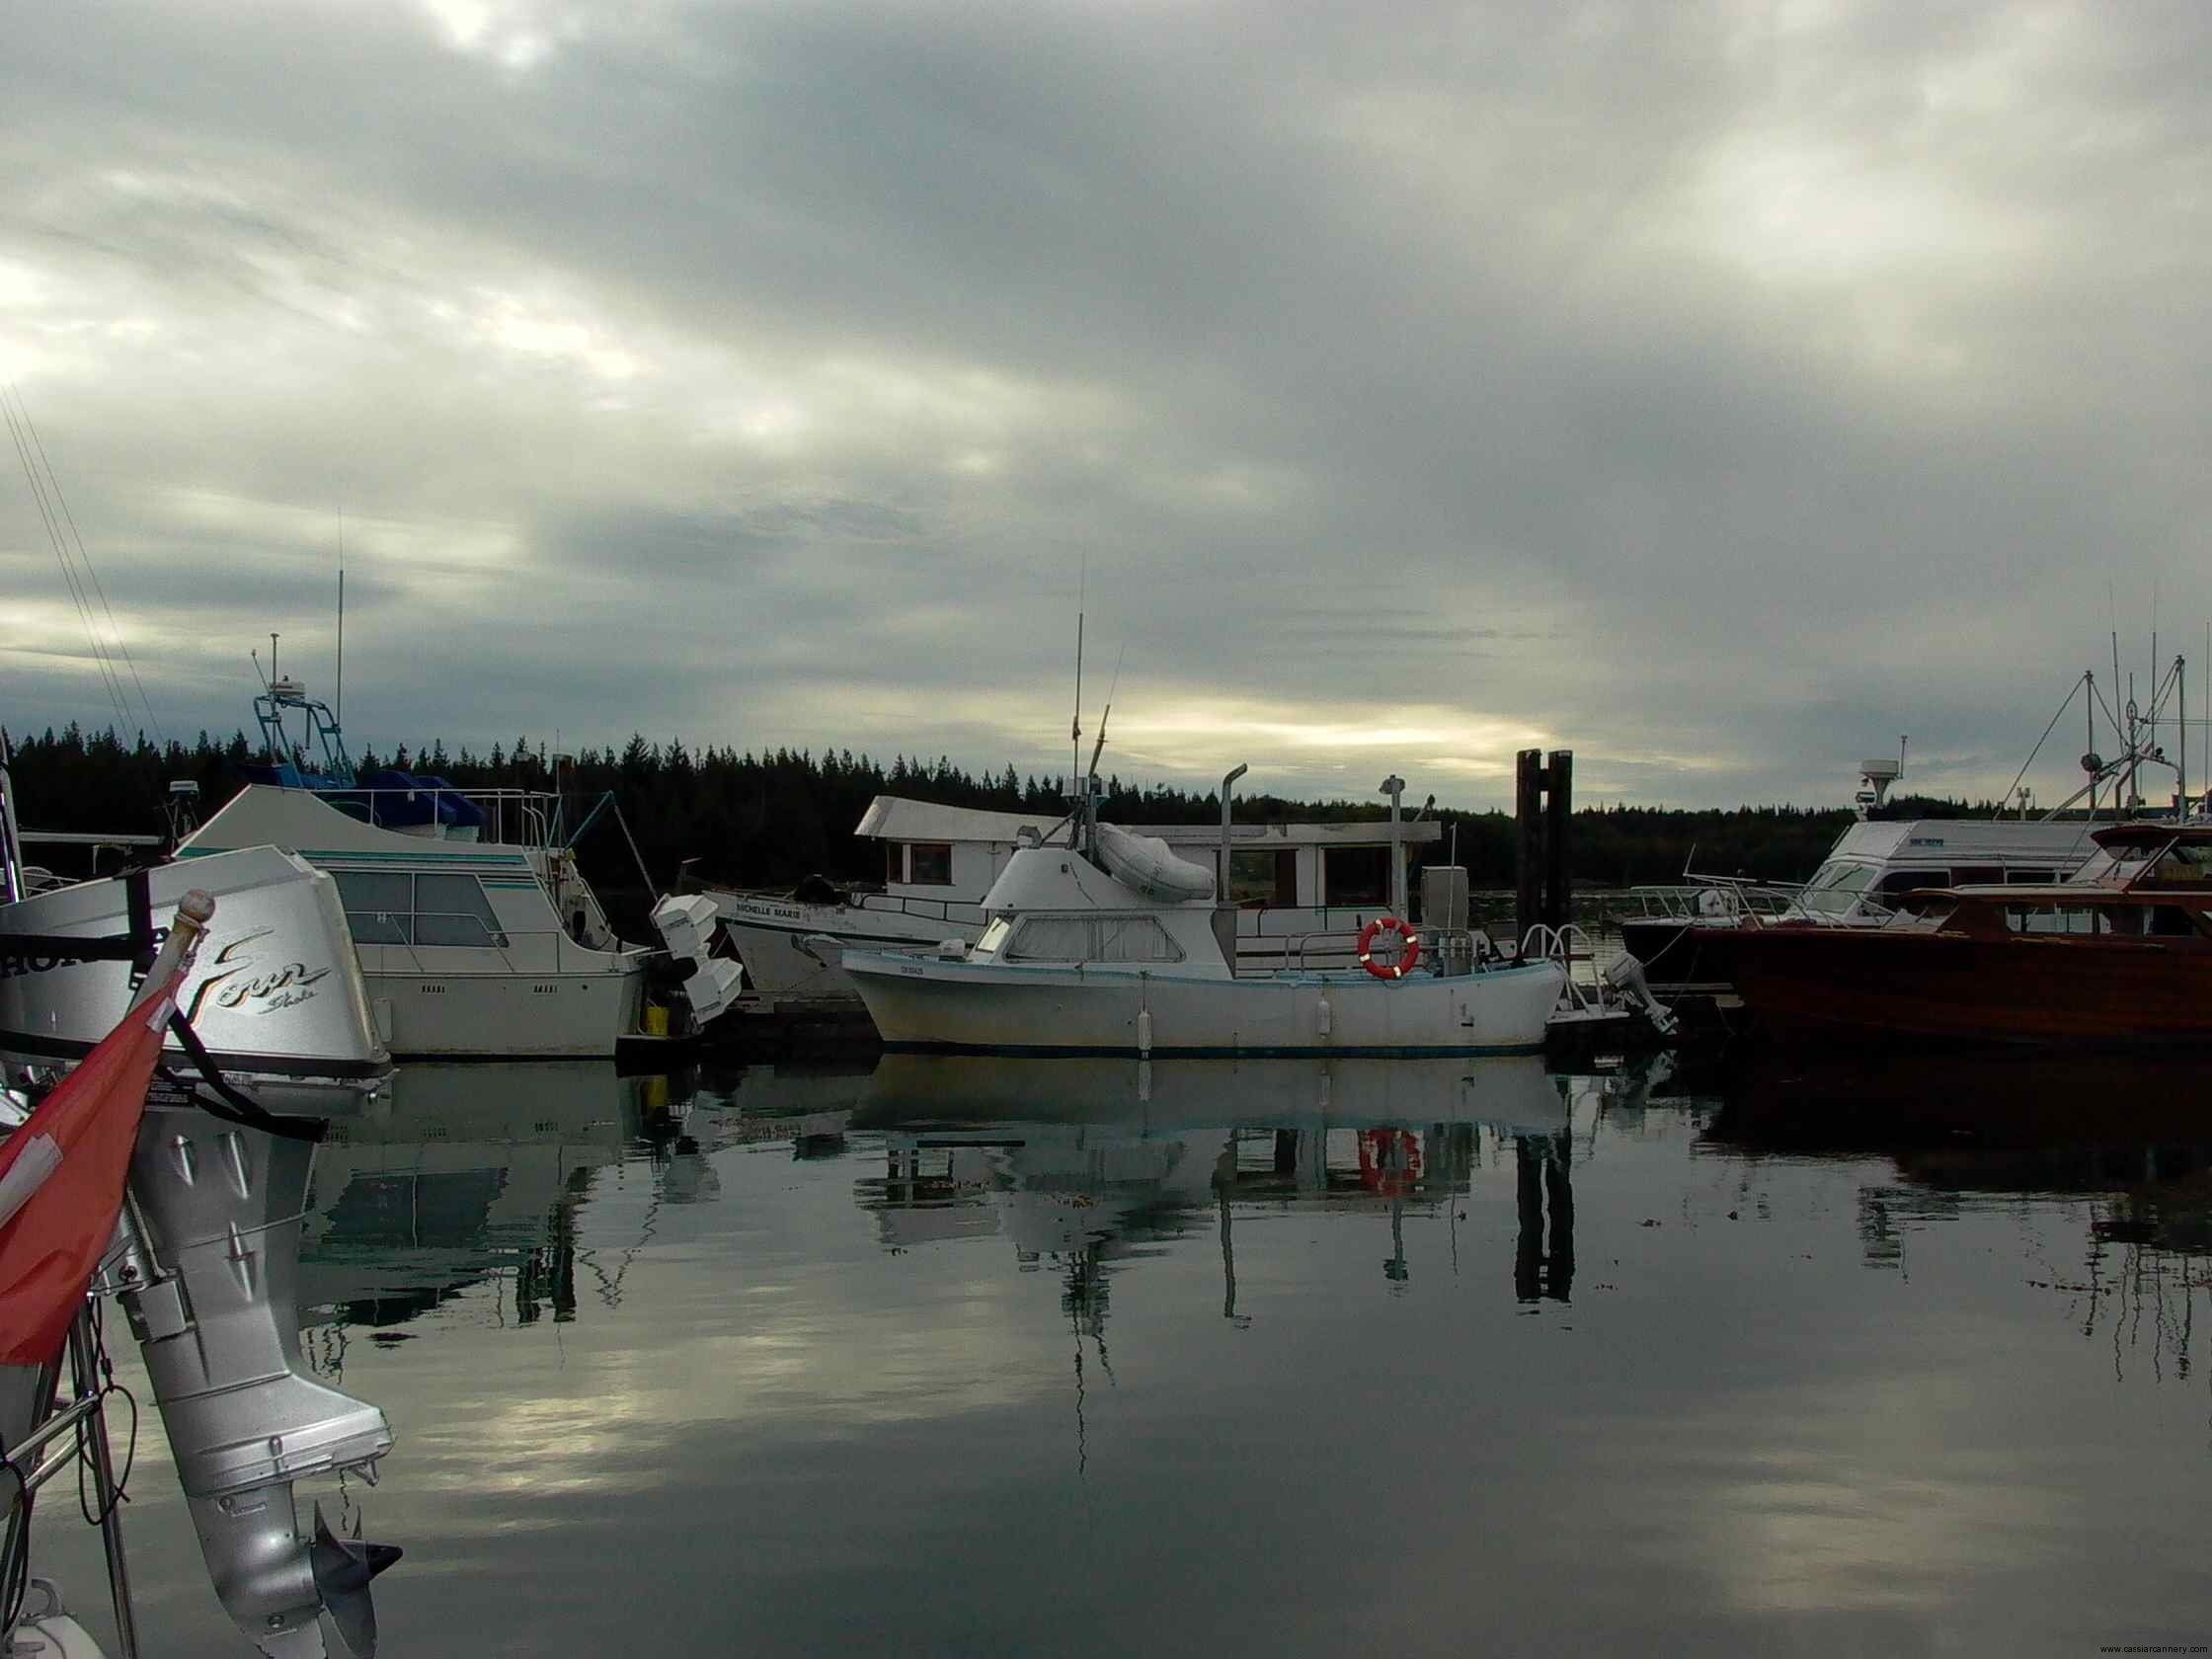 Cassiar Cannery - Poseidon Marine - Michelle Marie - view of the cabin extension